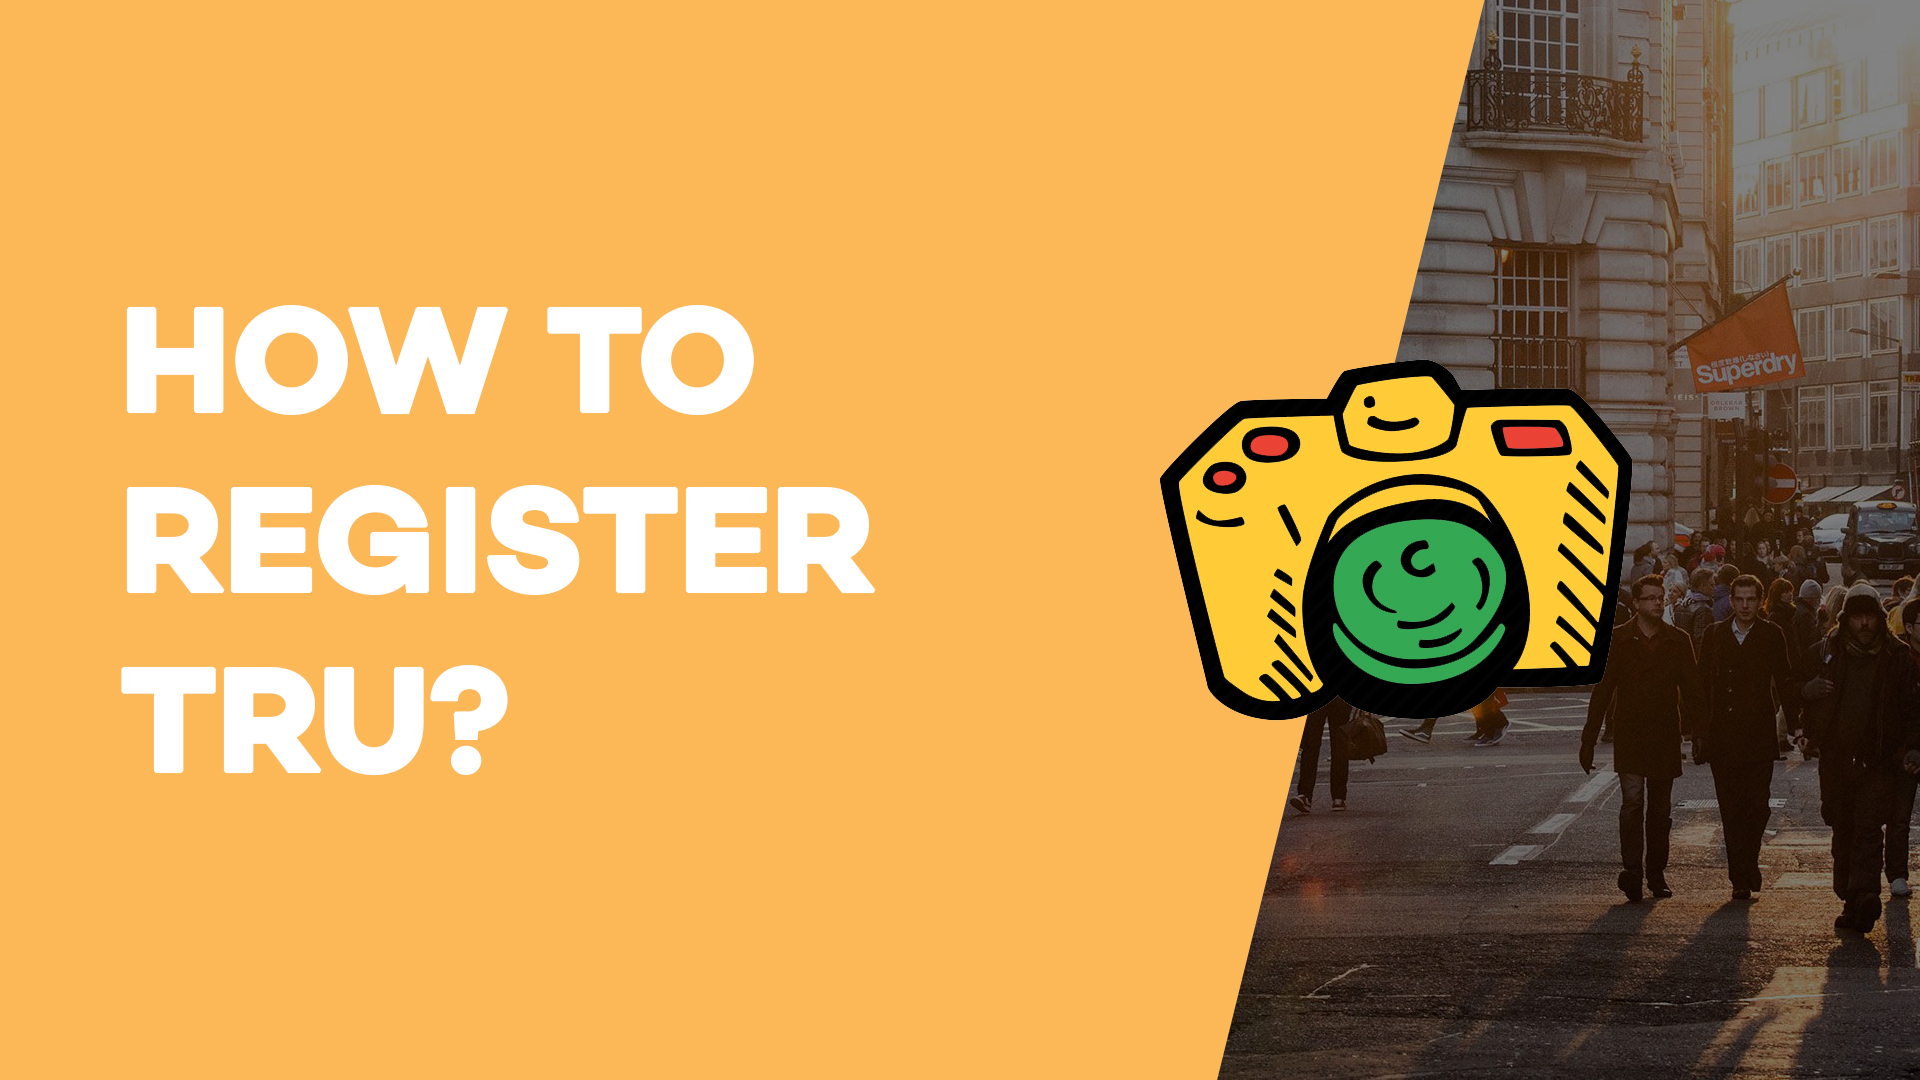 How to register Tru?